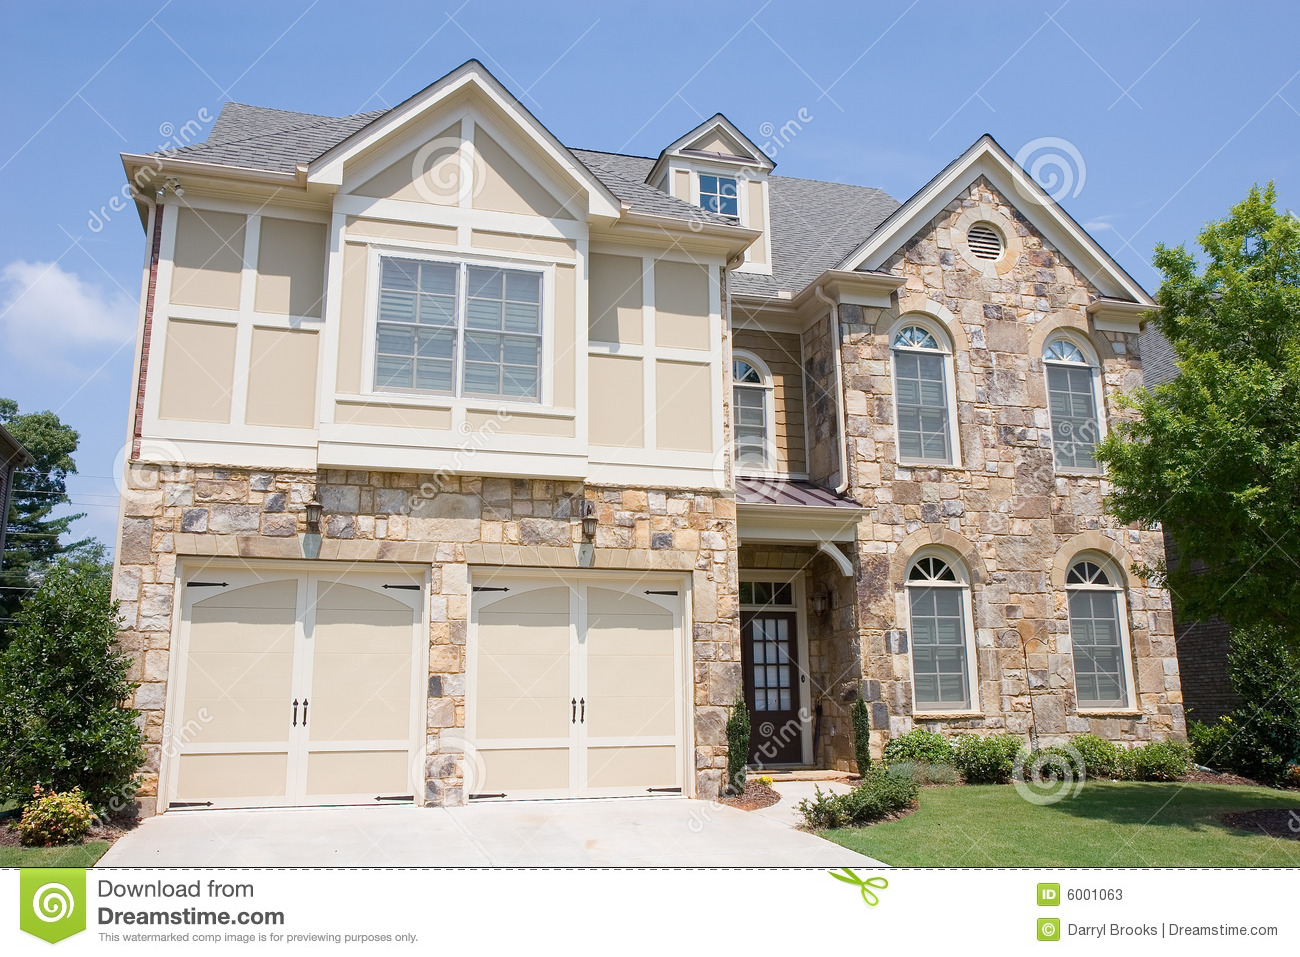 Stone And Wood Frame House Stock Photos Image 6001063